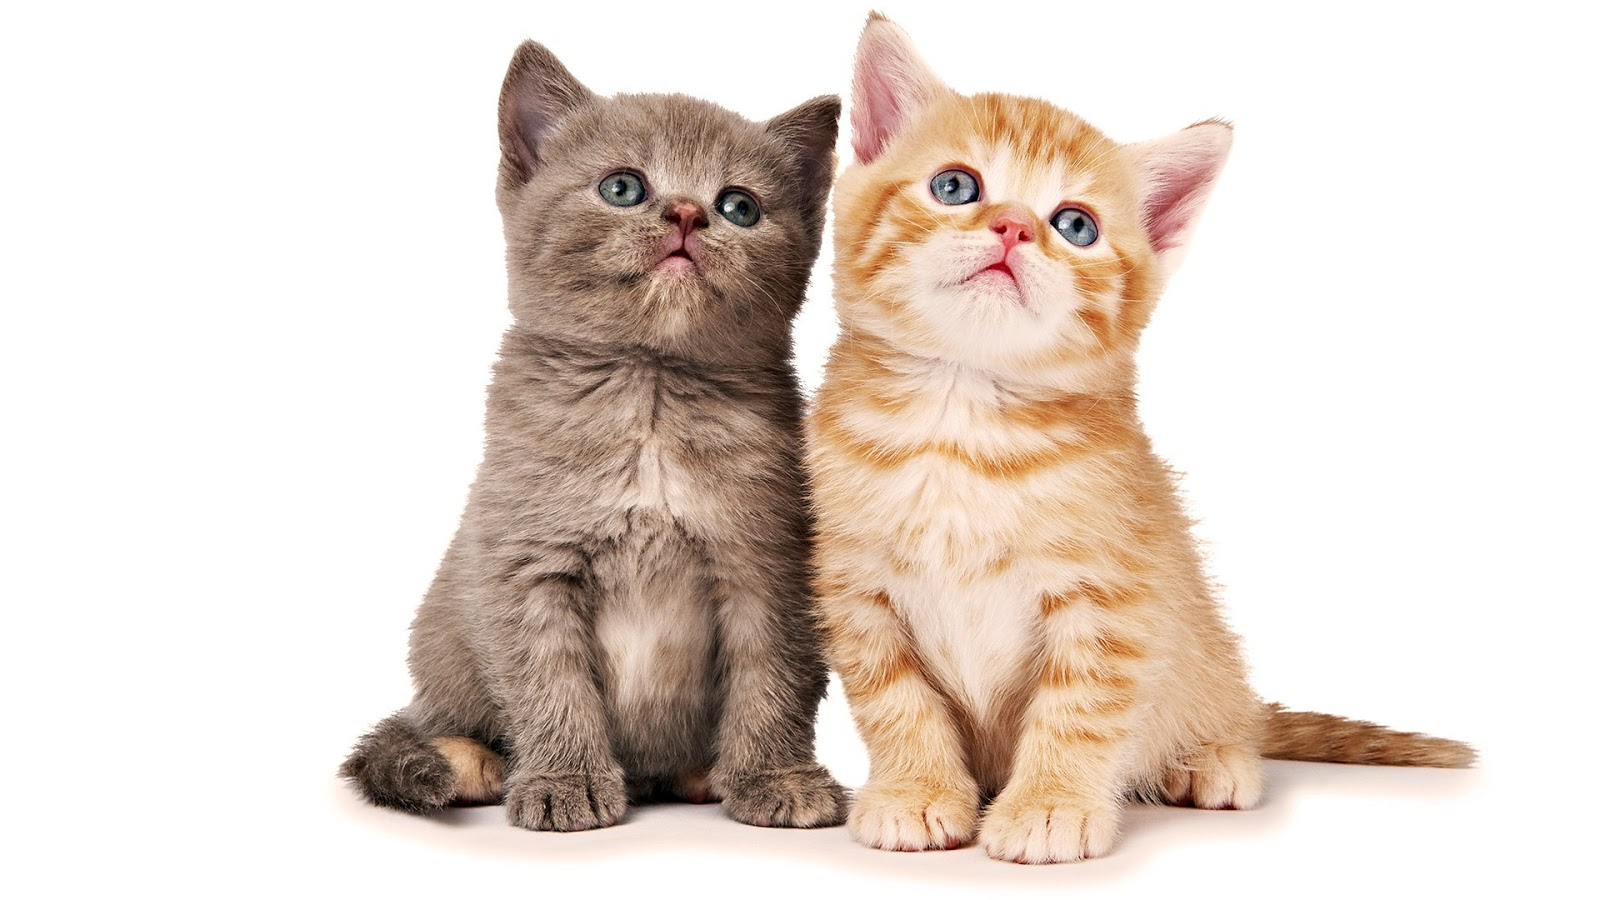 Cat Wallpapers for Phone